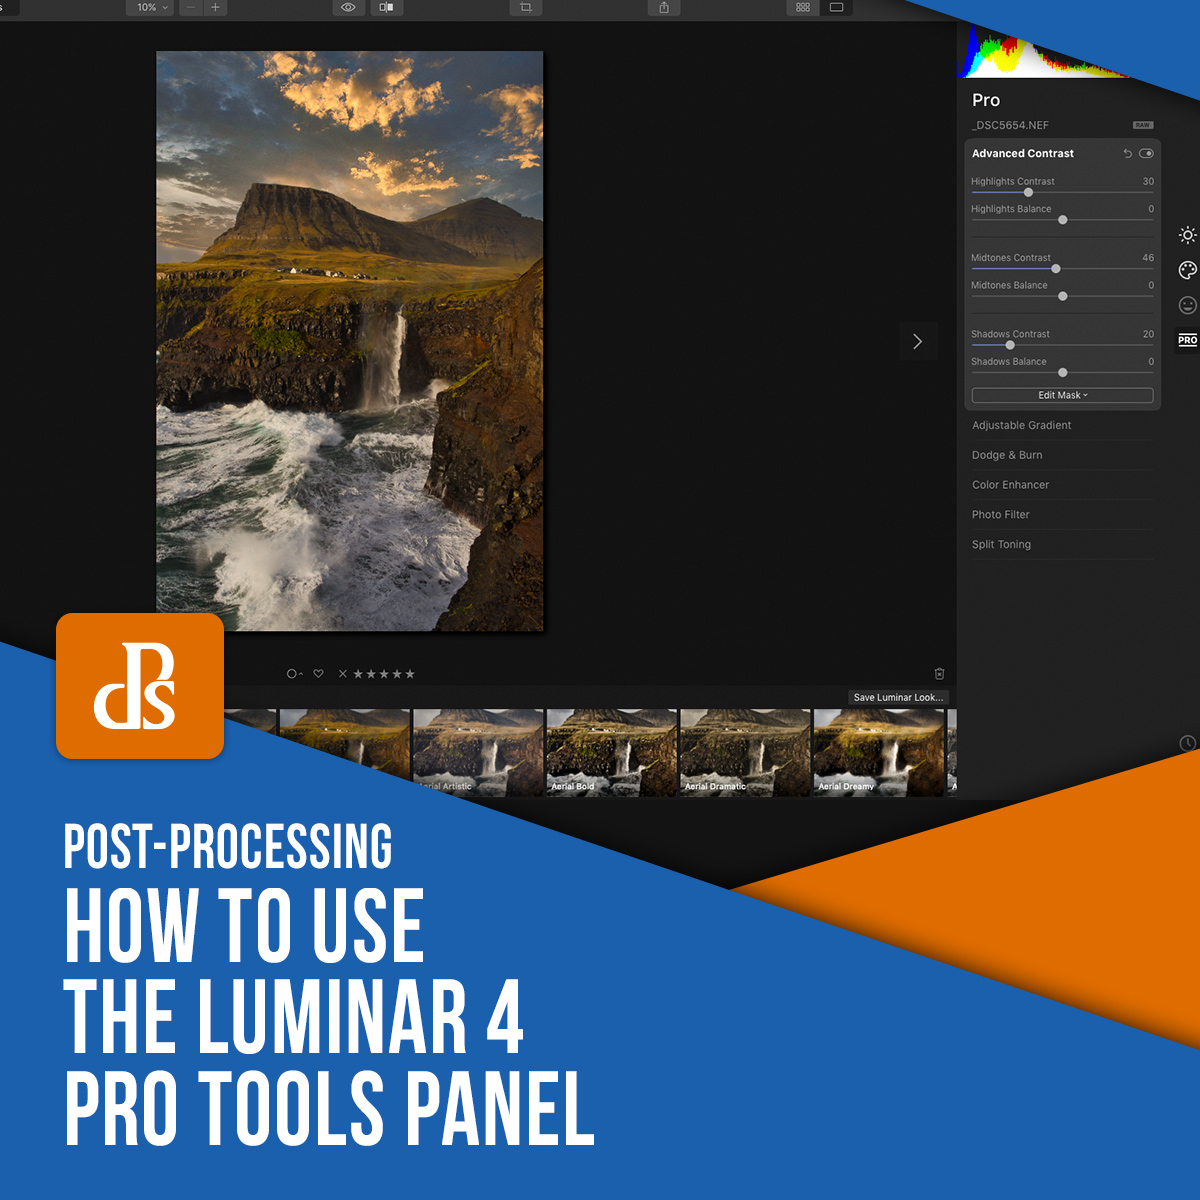 How to Use the Luminar 4 Pro Tools Panel